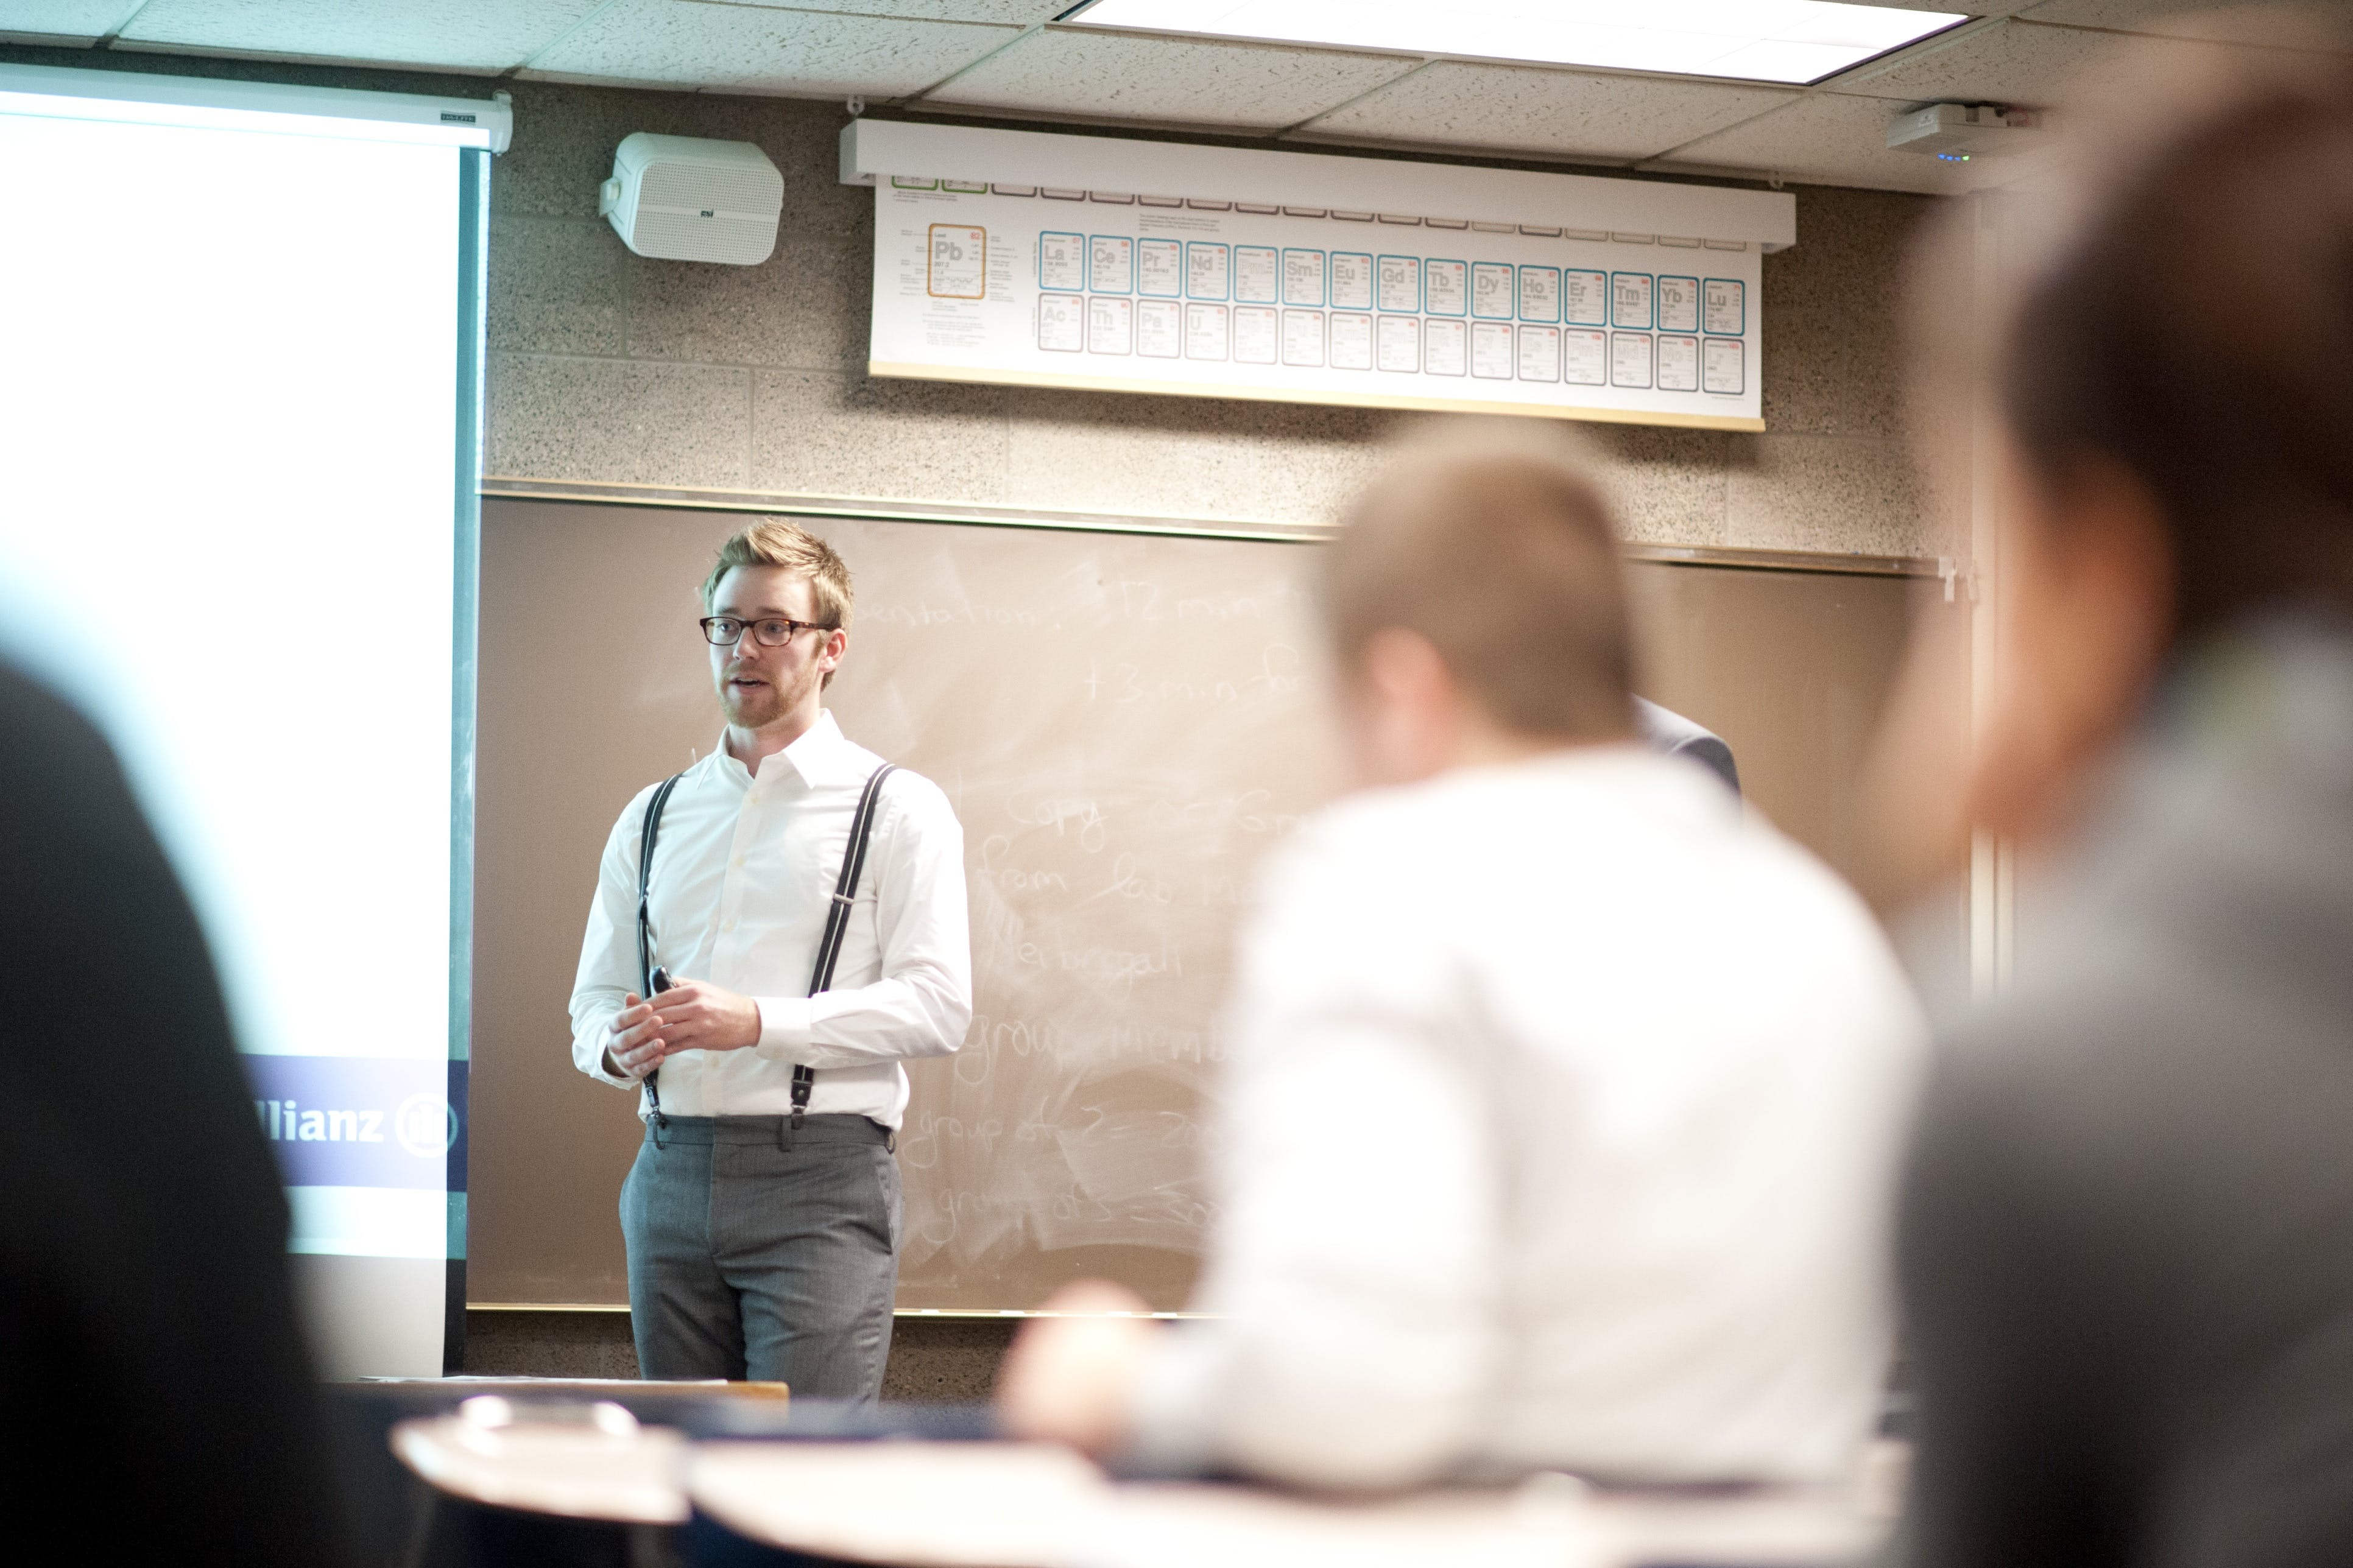 Student presenting to a classroom